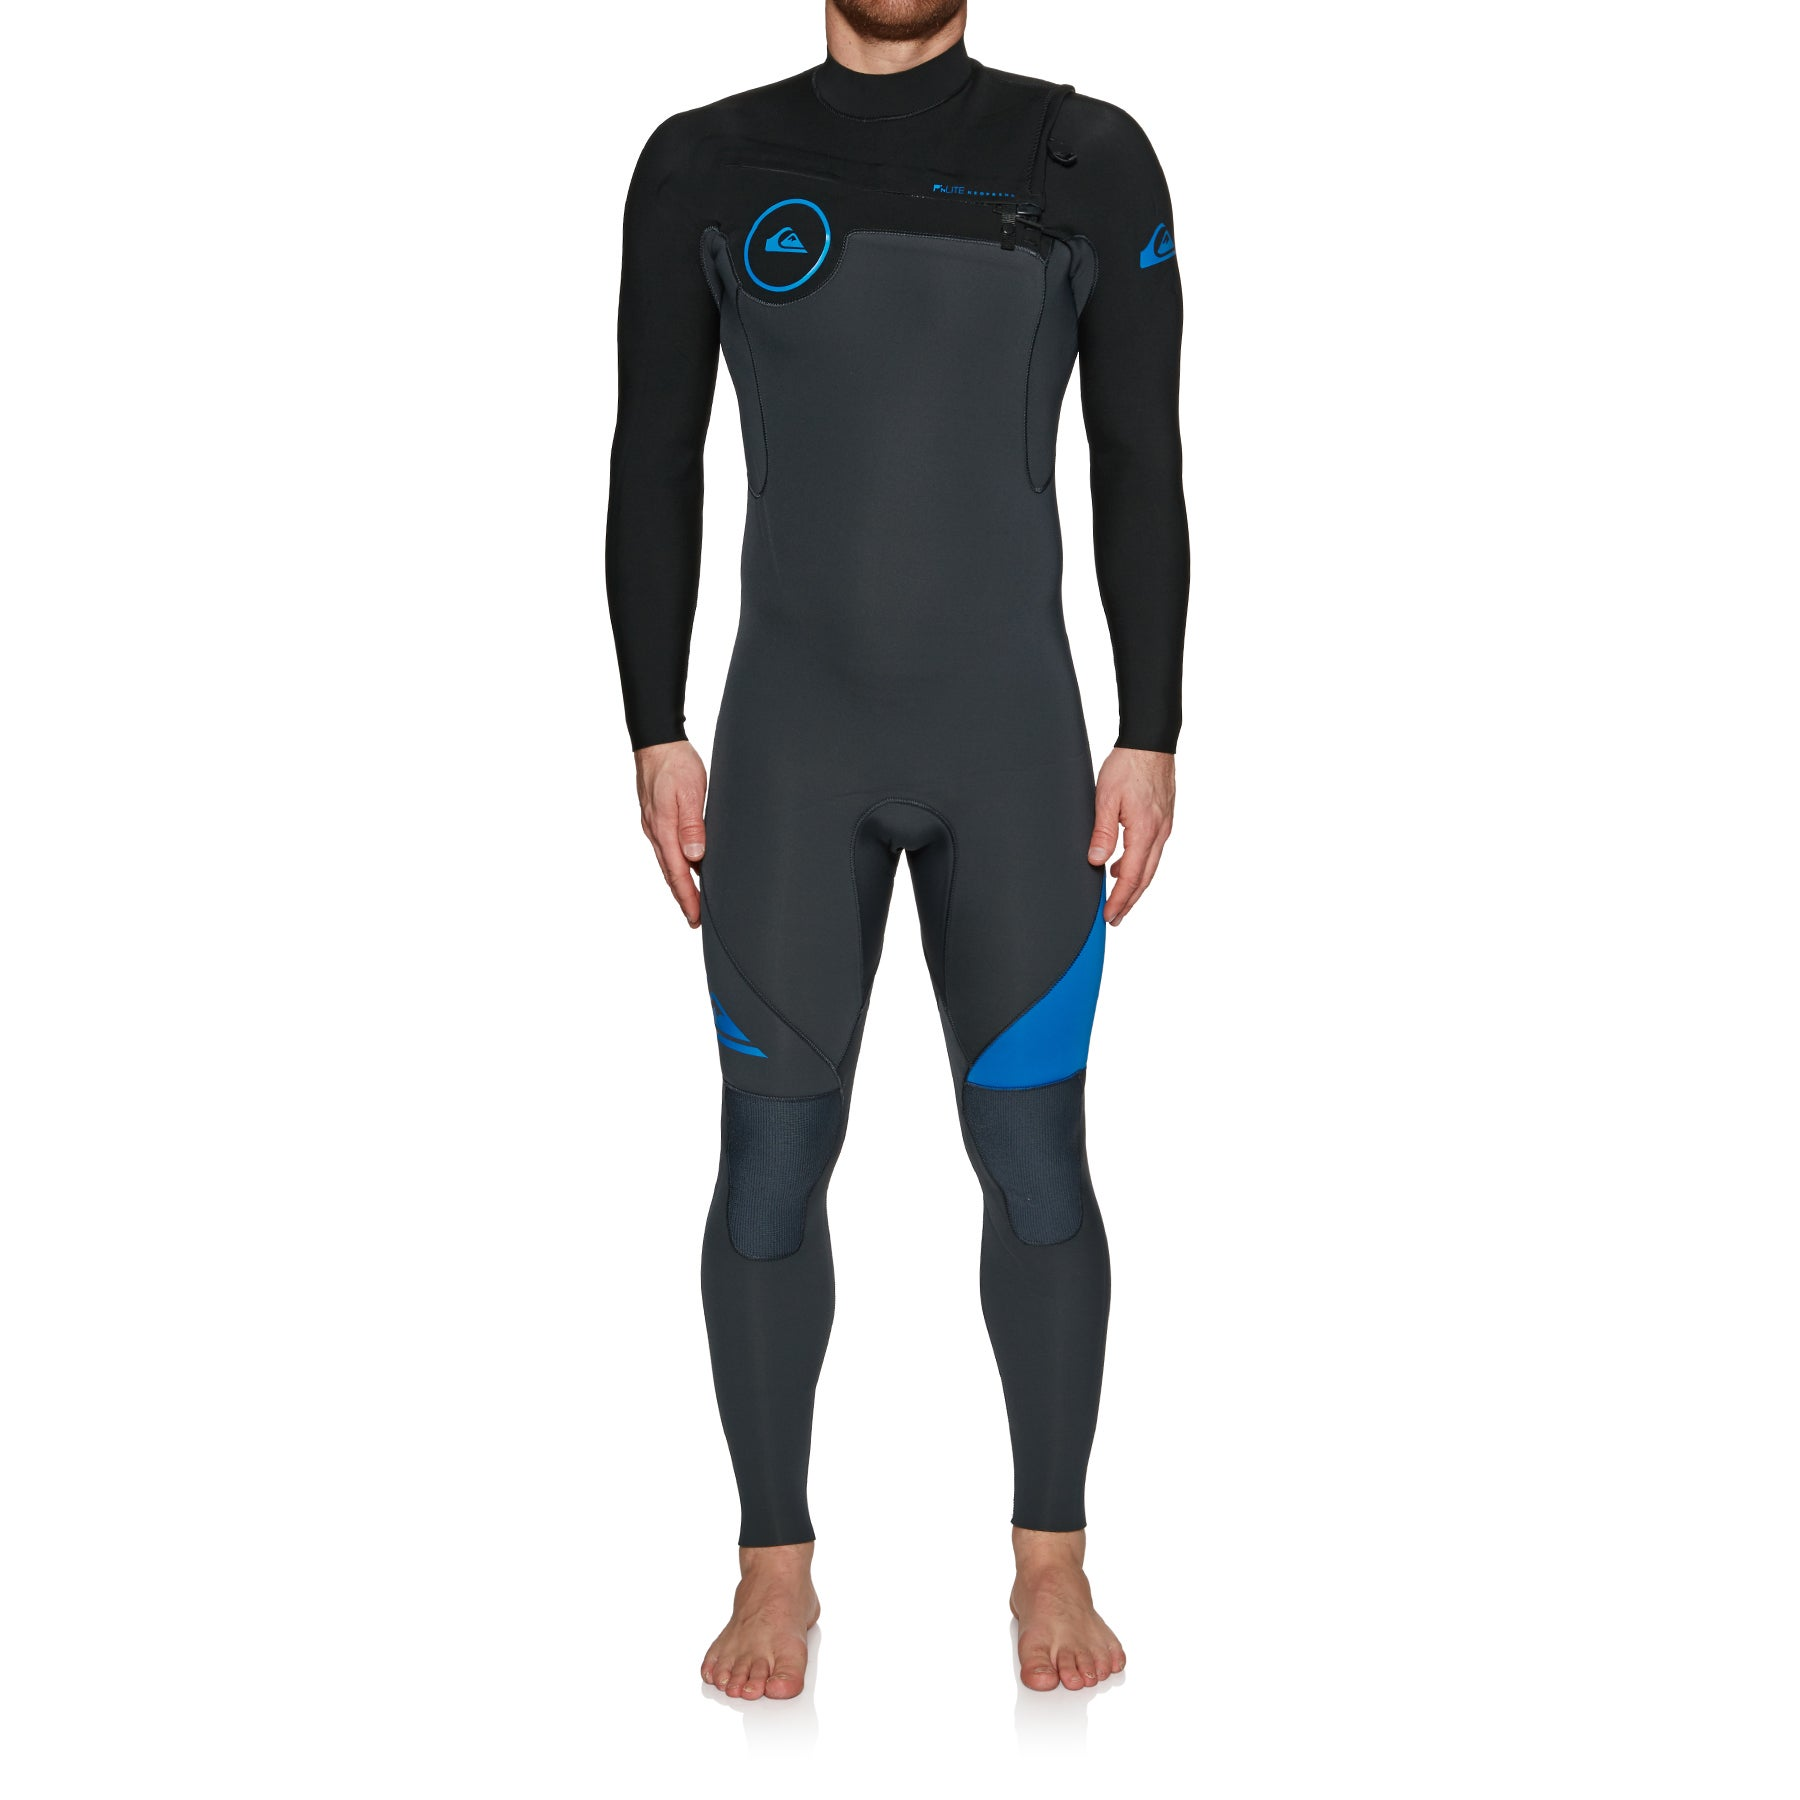 Quiksilver 4/3mm Syncro Series Chest Zip GBS Wetsuit